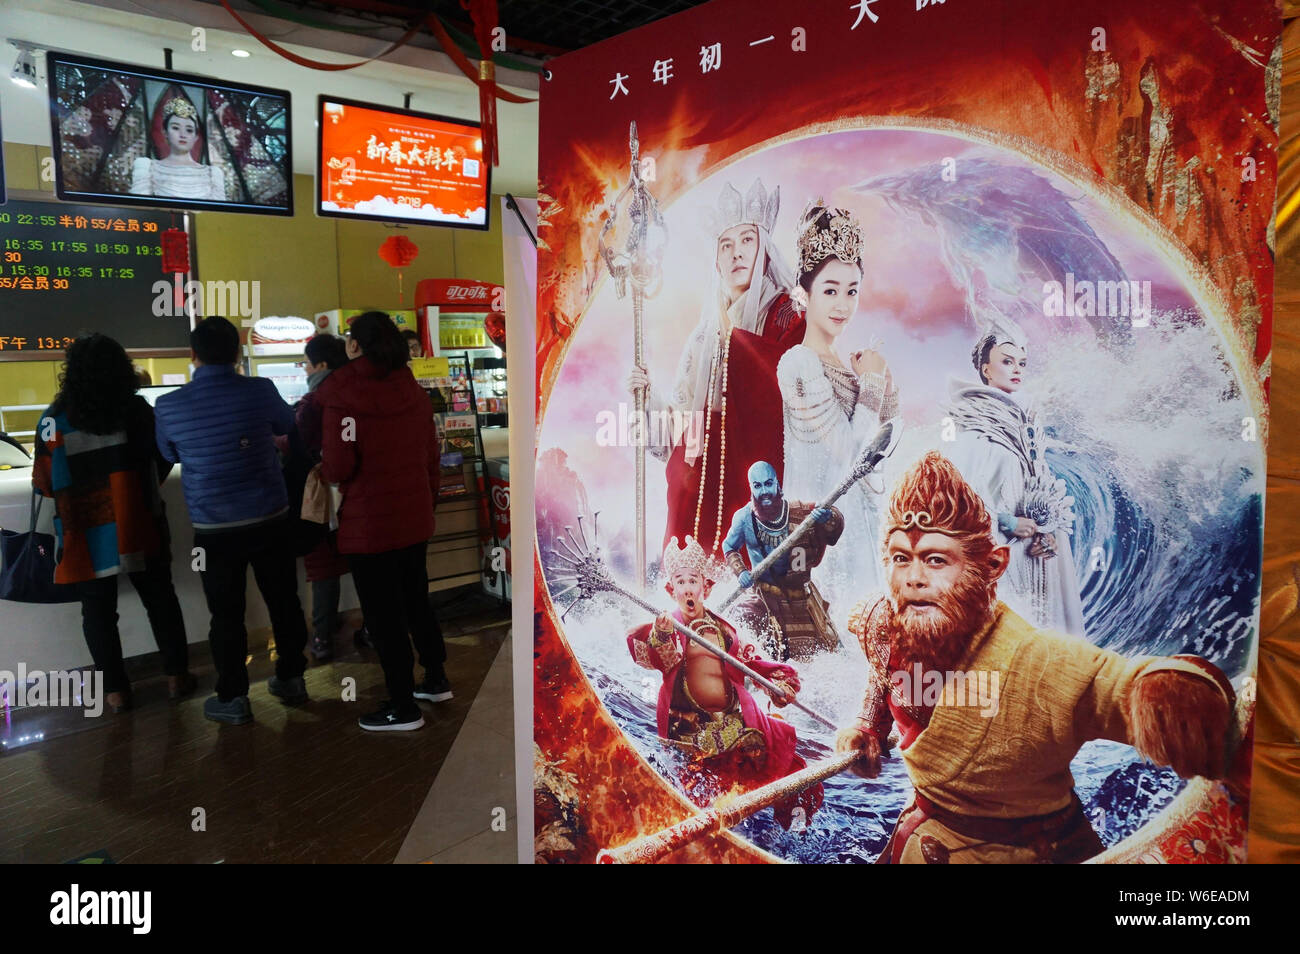 File Chinese Filmgoers Buy Tickets Near An Advertisement For The